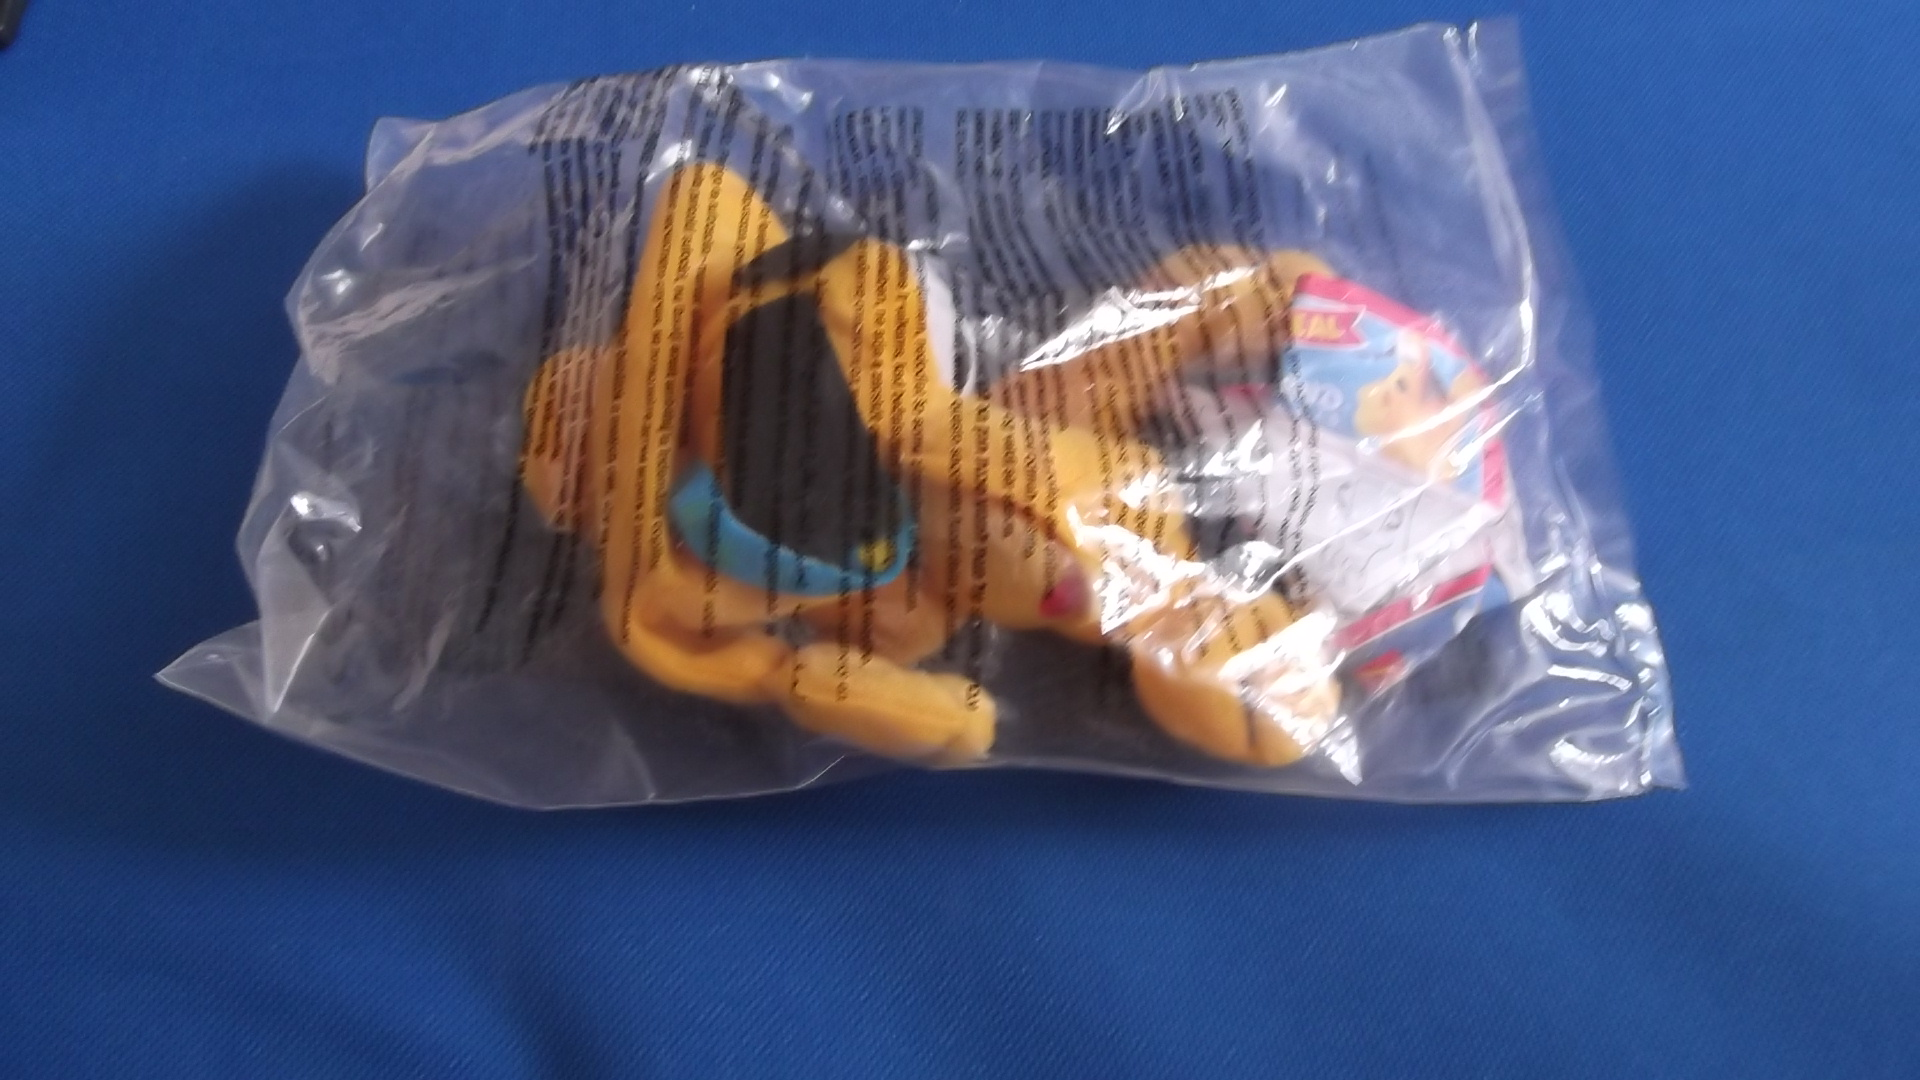 McDonalds Disneyland Paris Pluto Toy From 2001 New